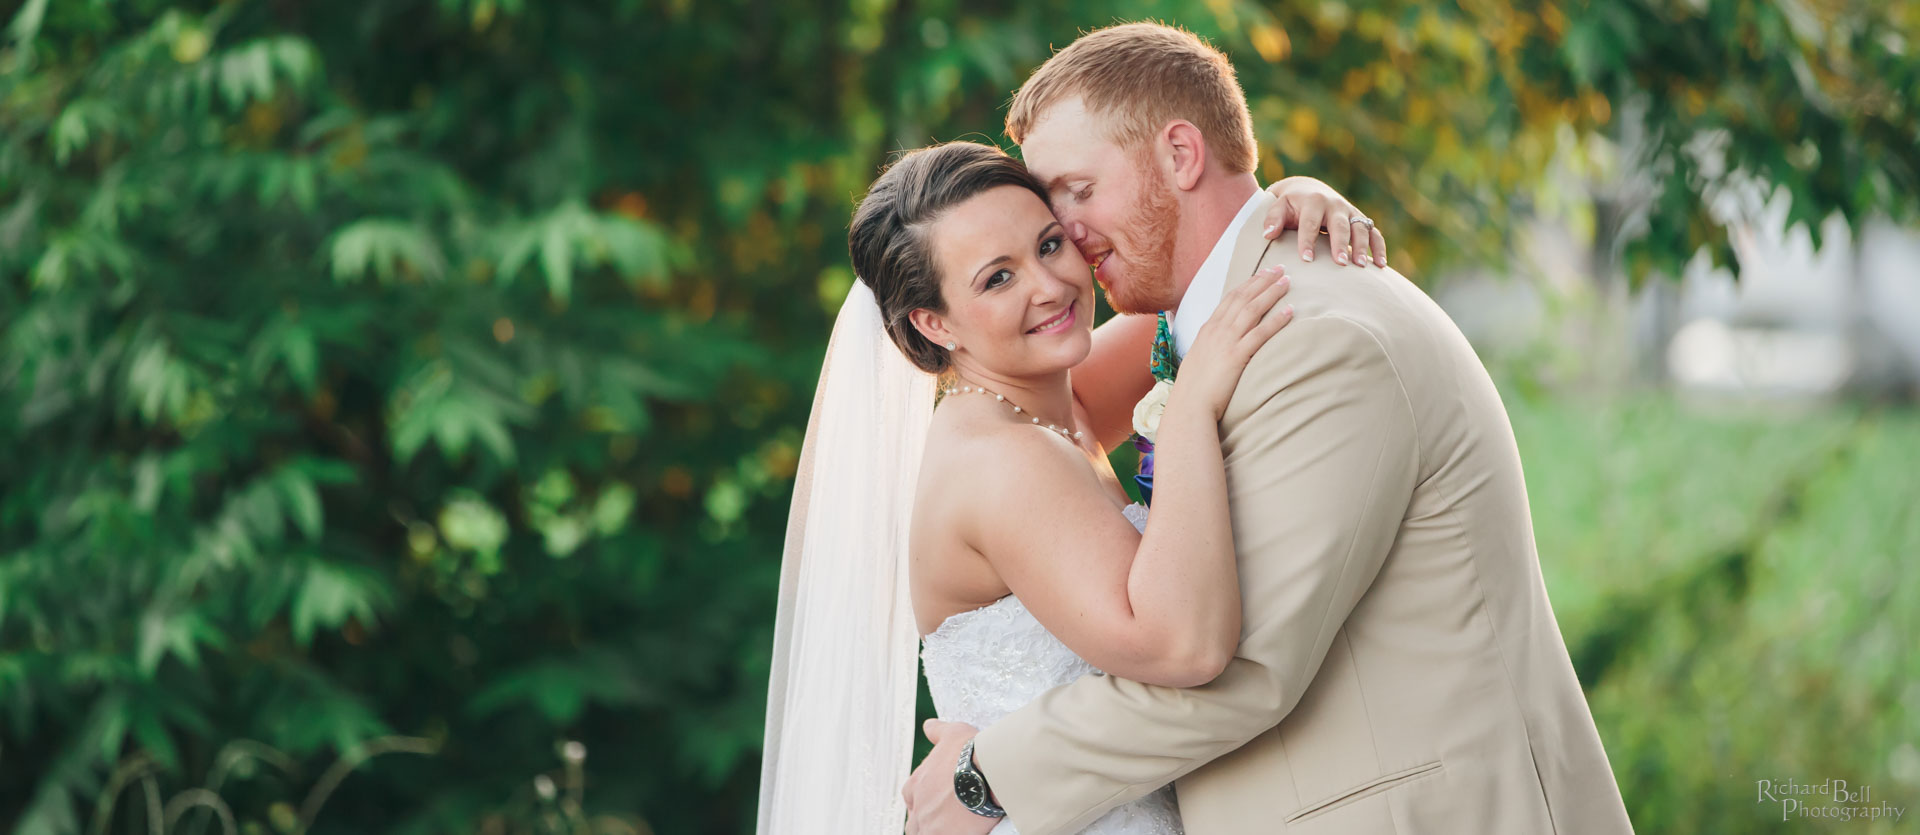 Bried and Groom Outside